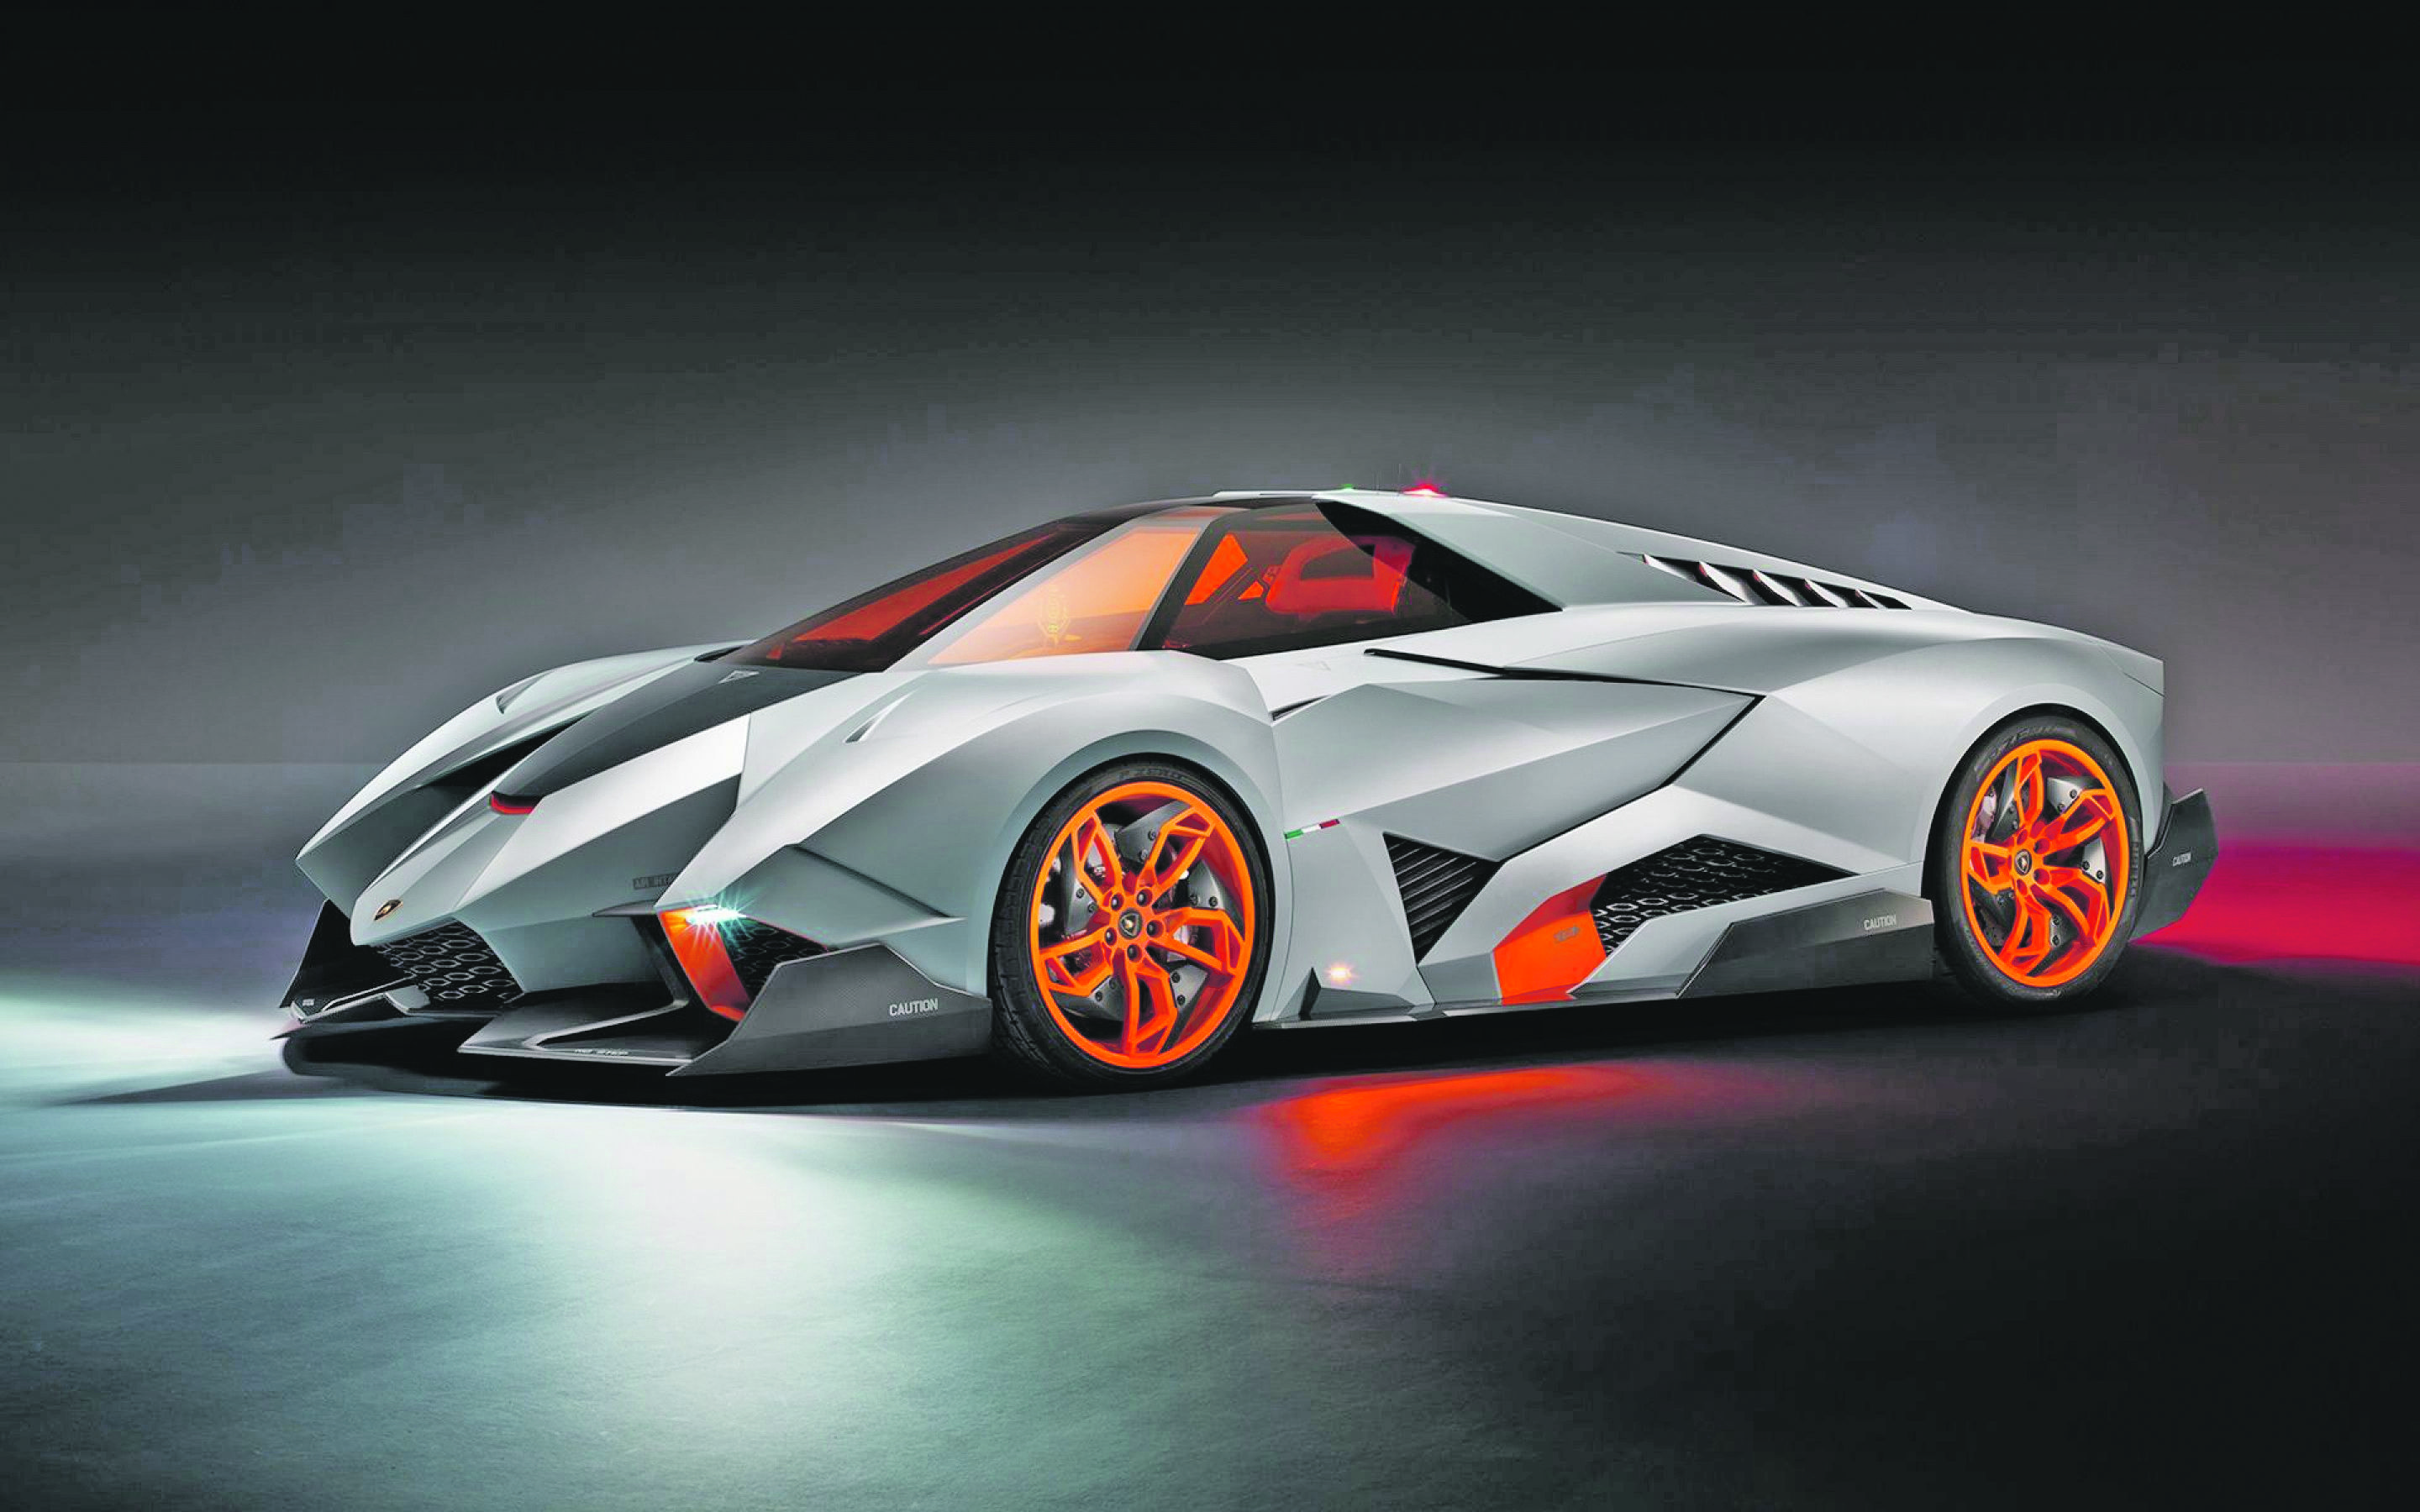 Top Wallpaper Hd Lamborghini Egoista  Www Youthsportfoto Com